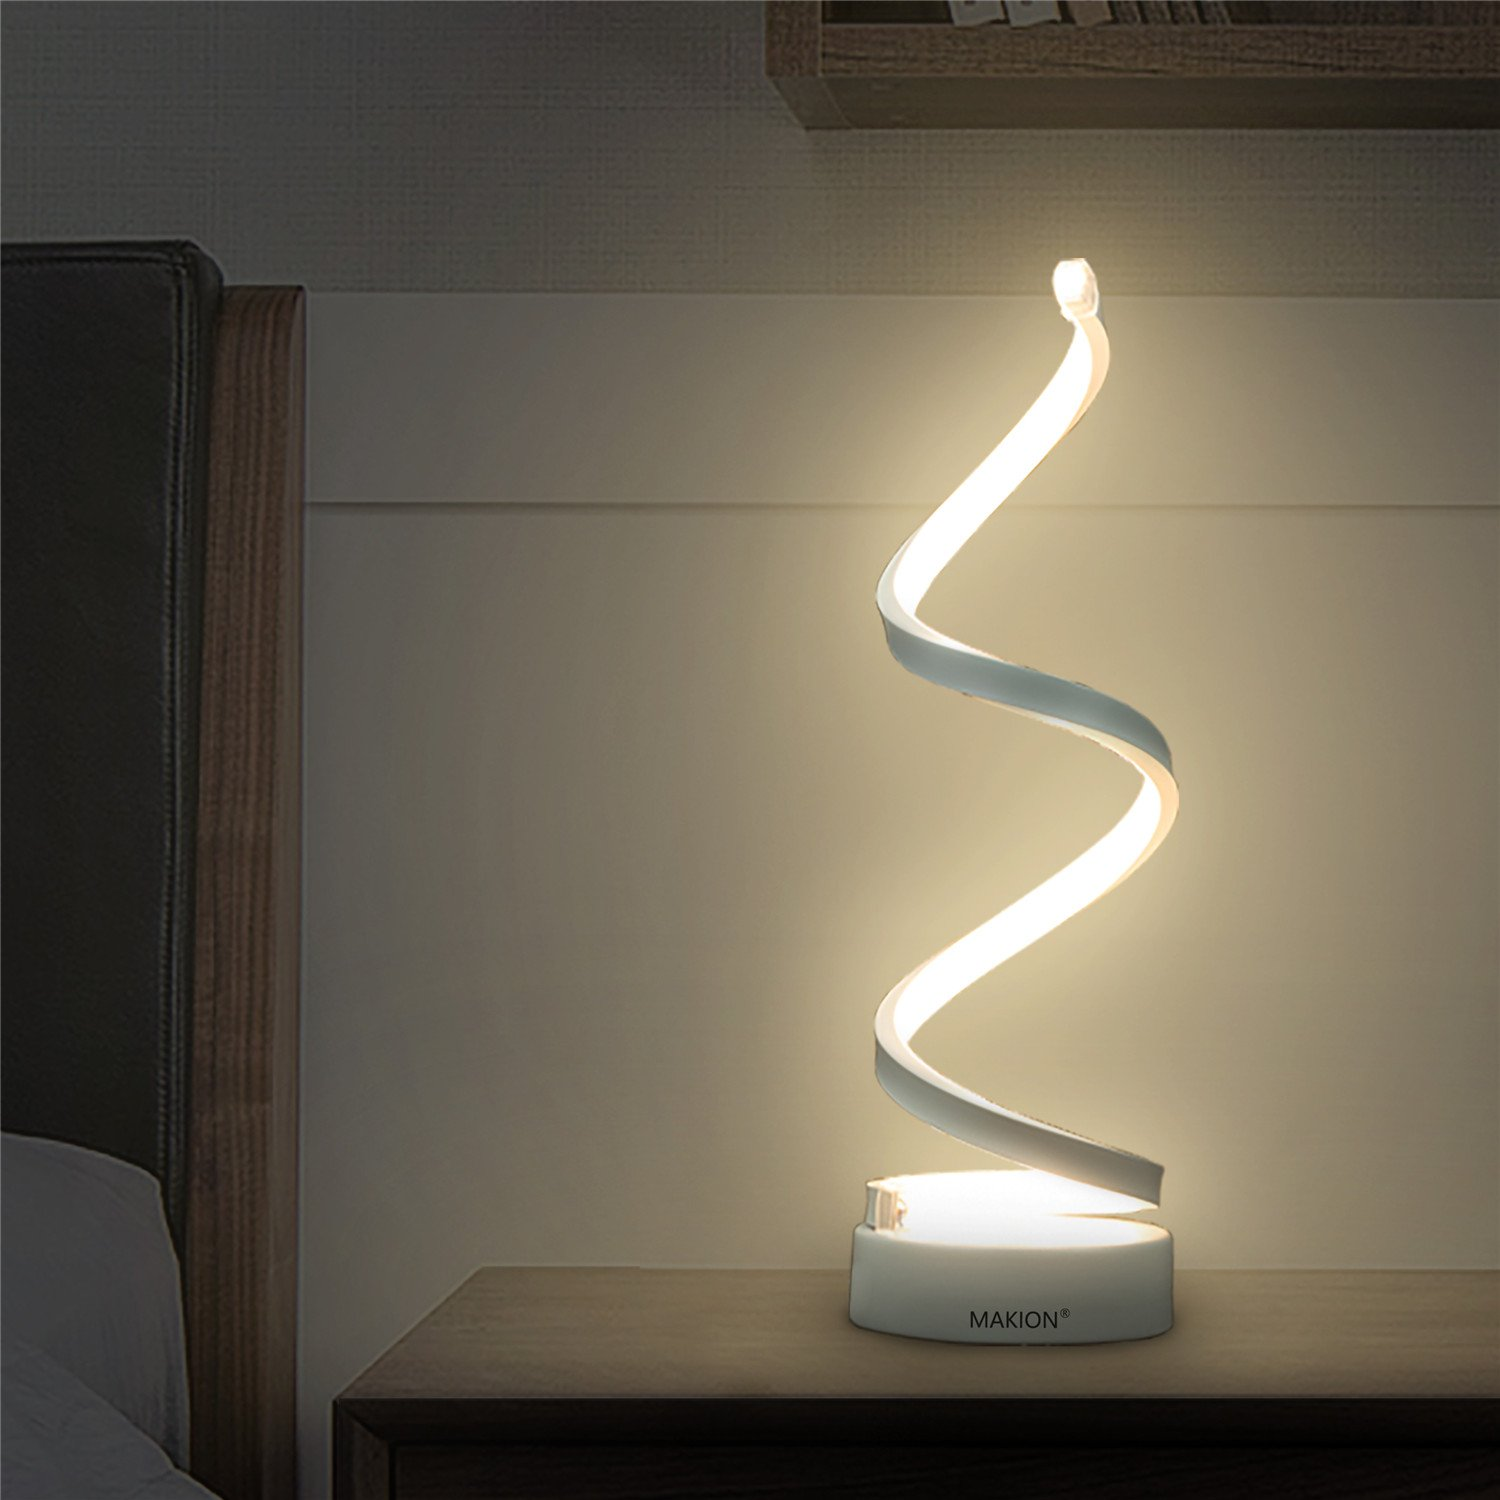 ویکالا · خرید  اصل اورجینال · خرید از آمازون · Makion Spiral LED Table Lamp, Curved LED Desk Lamp, Contemporary Minimalist Lighting Design, Warm White Light,Smart Acrylic Material Perfect for Bedroom Living Room (White) wekala · ویکالا